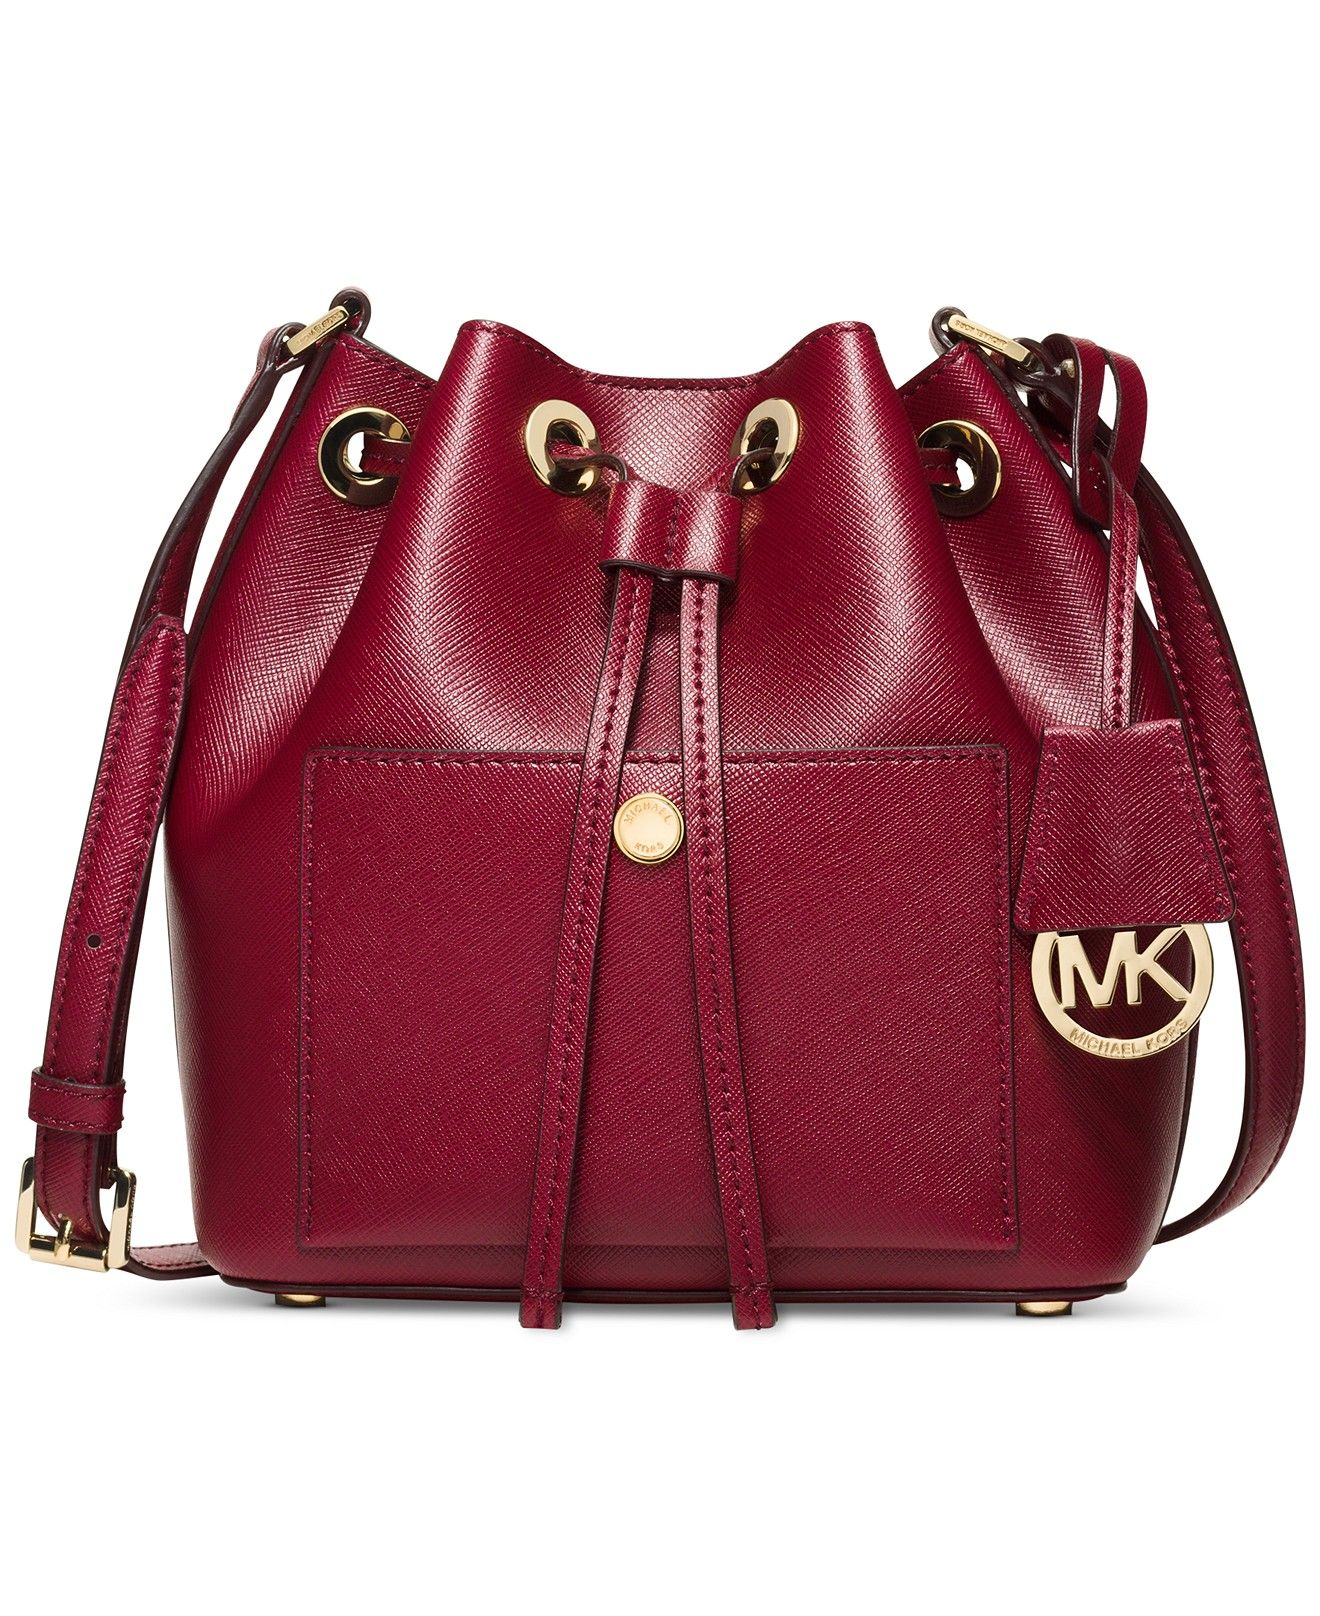 Michael kors bags in dubai - Michael Michael Kors Greenwich Small Bucket Bag Michael Kors Handbags Handbags Accessories